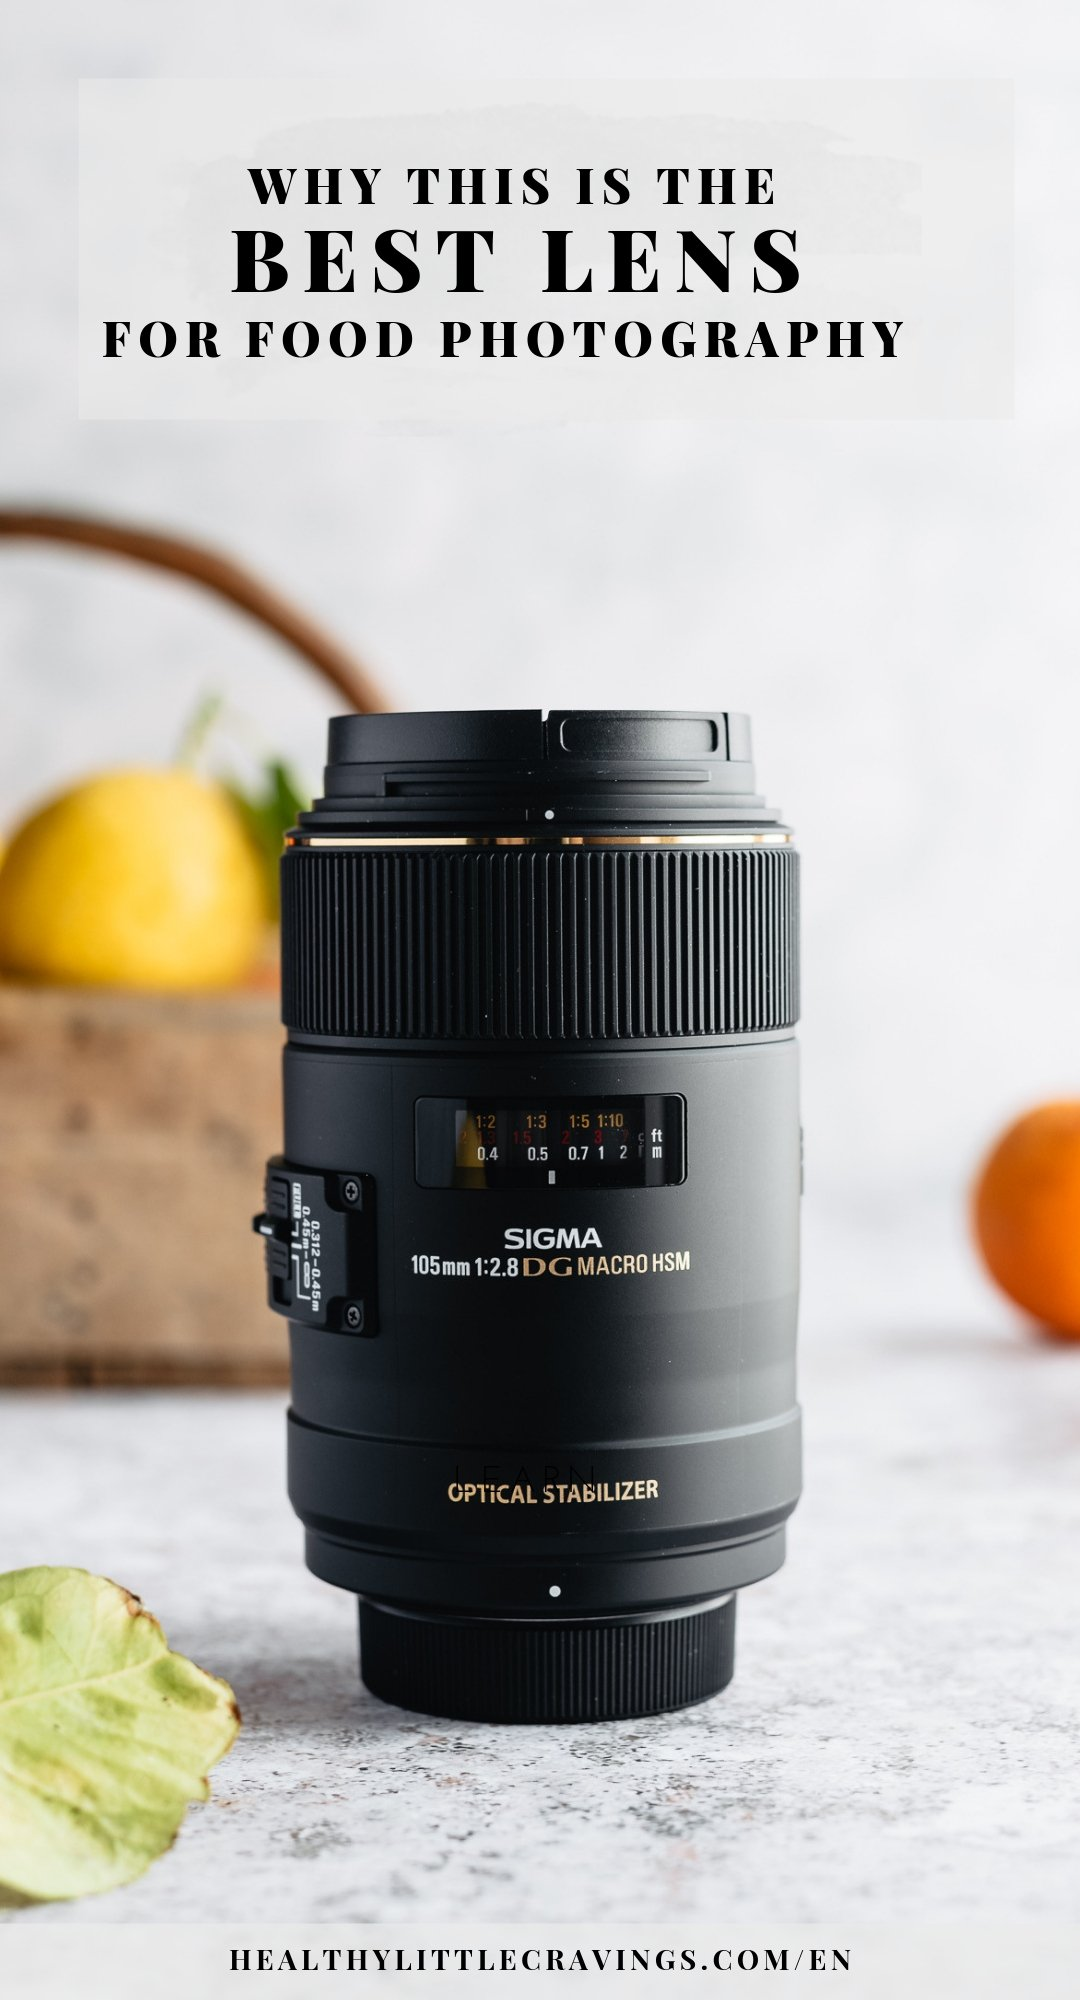 The 105 mm is the best food photography lens